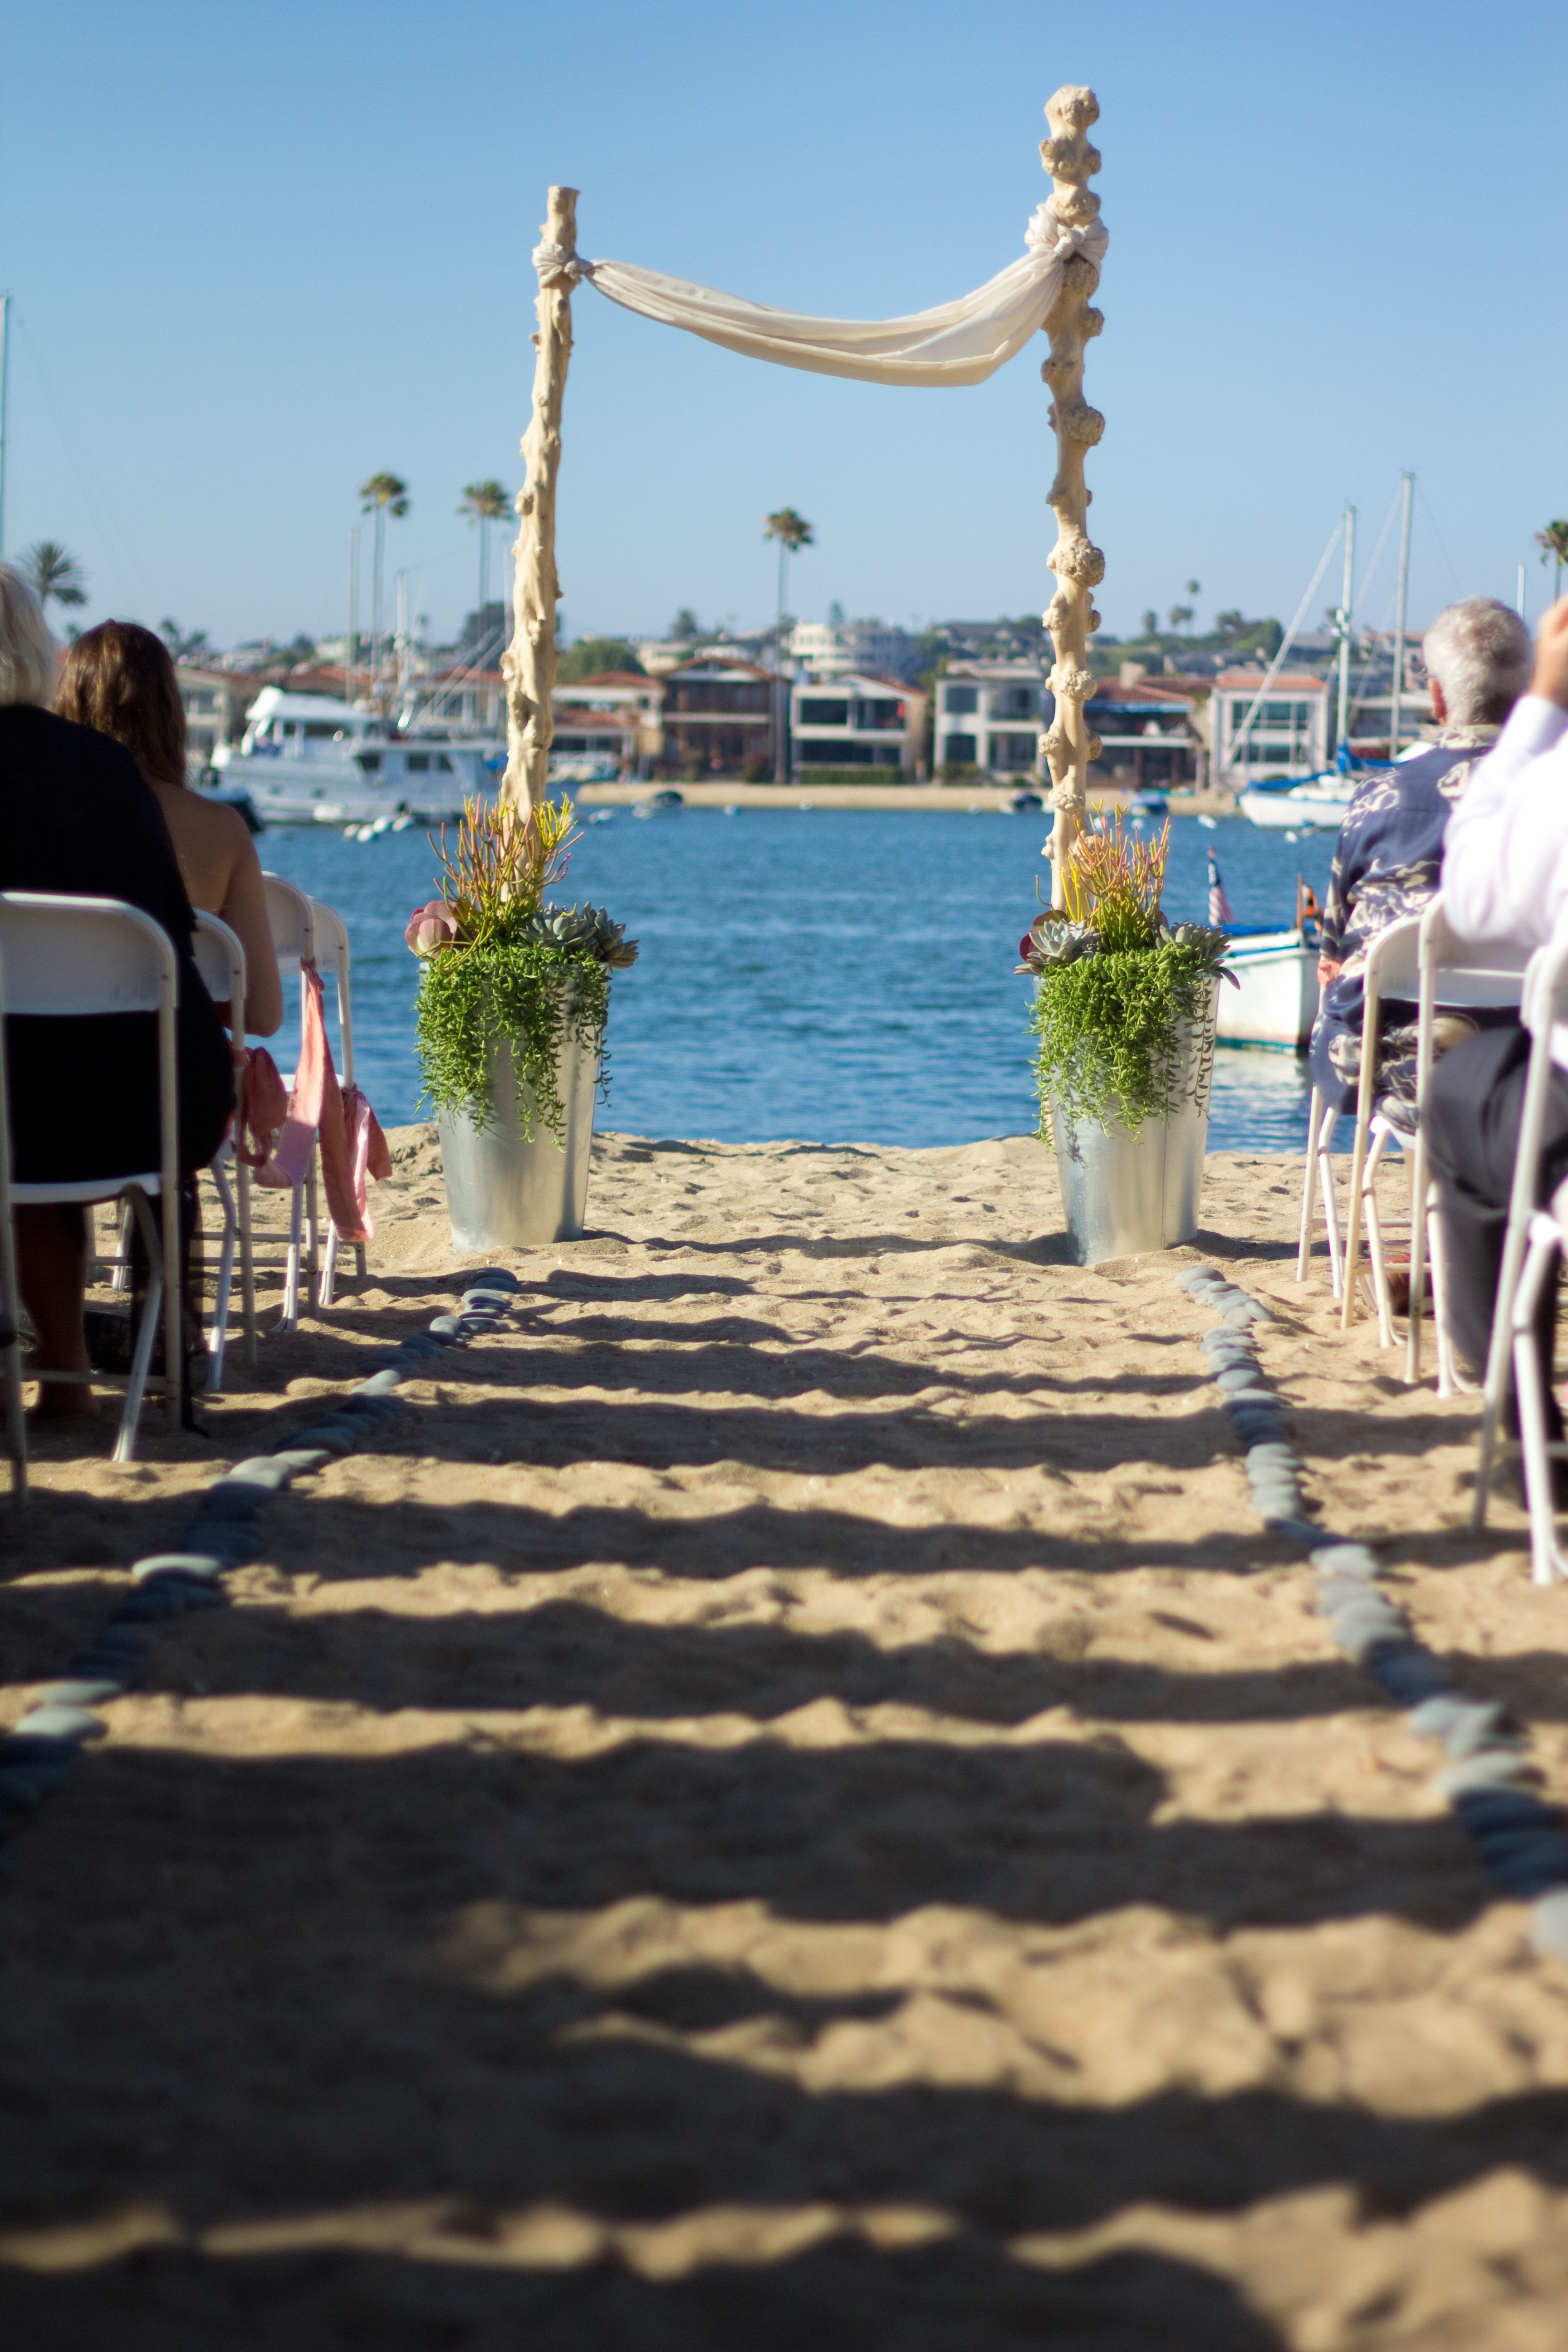 beach wedding | by my muse design & events | photography: michael radford